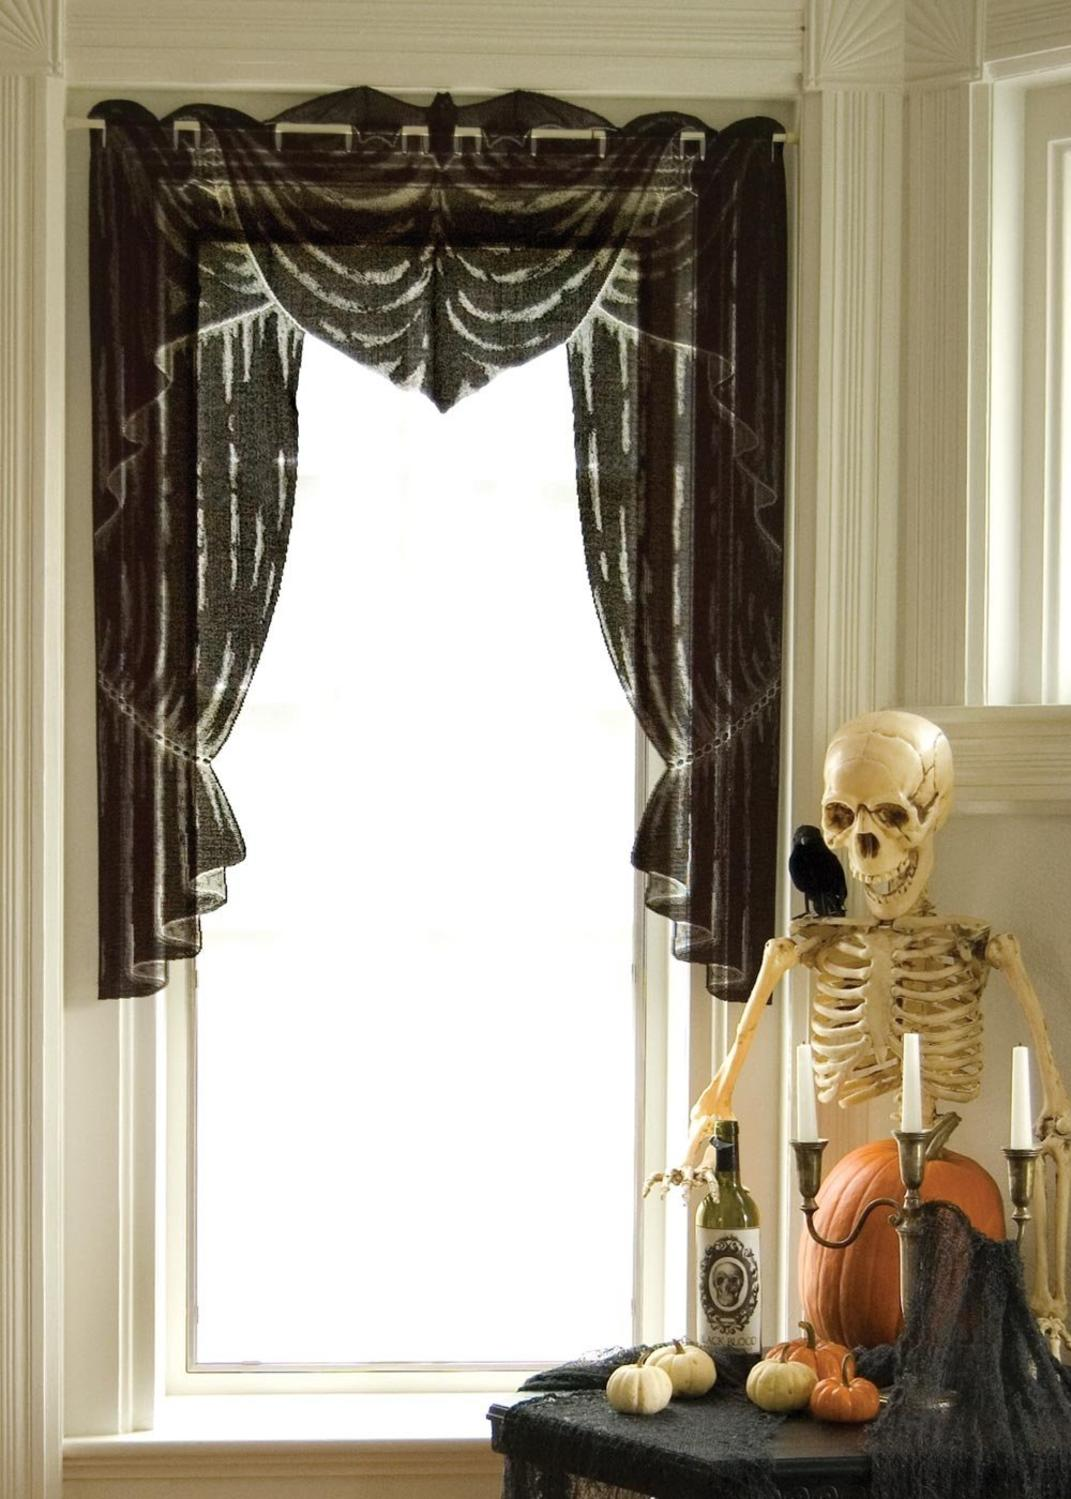 "Decorative Black Phantom Drape Halloween Window Swag Valance 38"" x 53"""